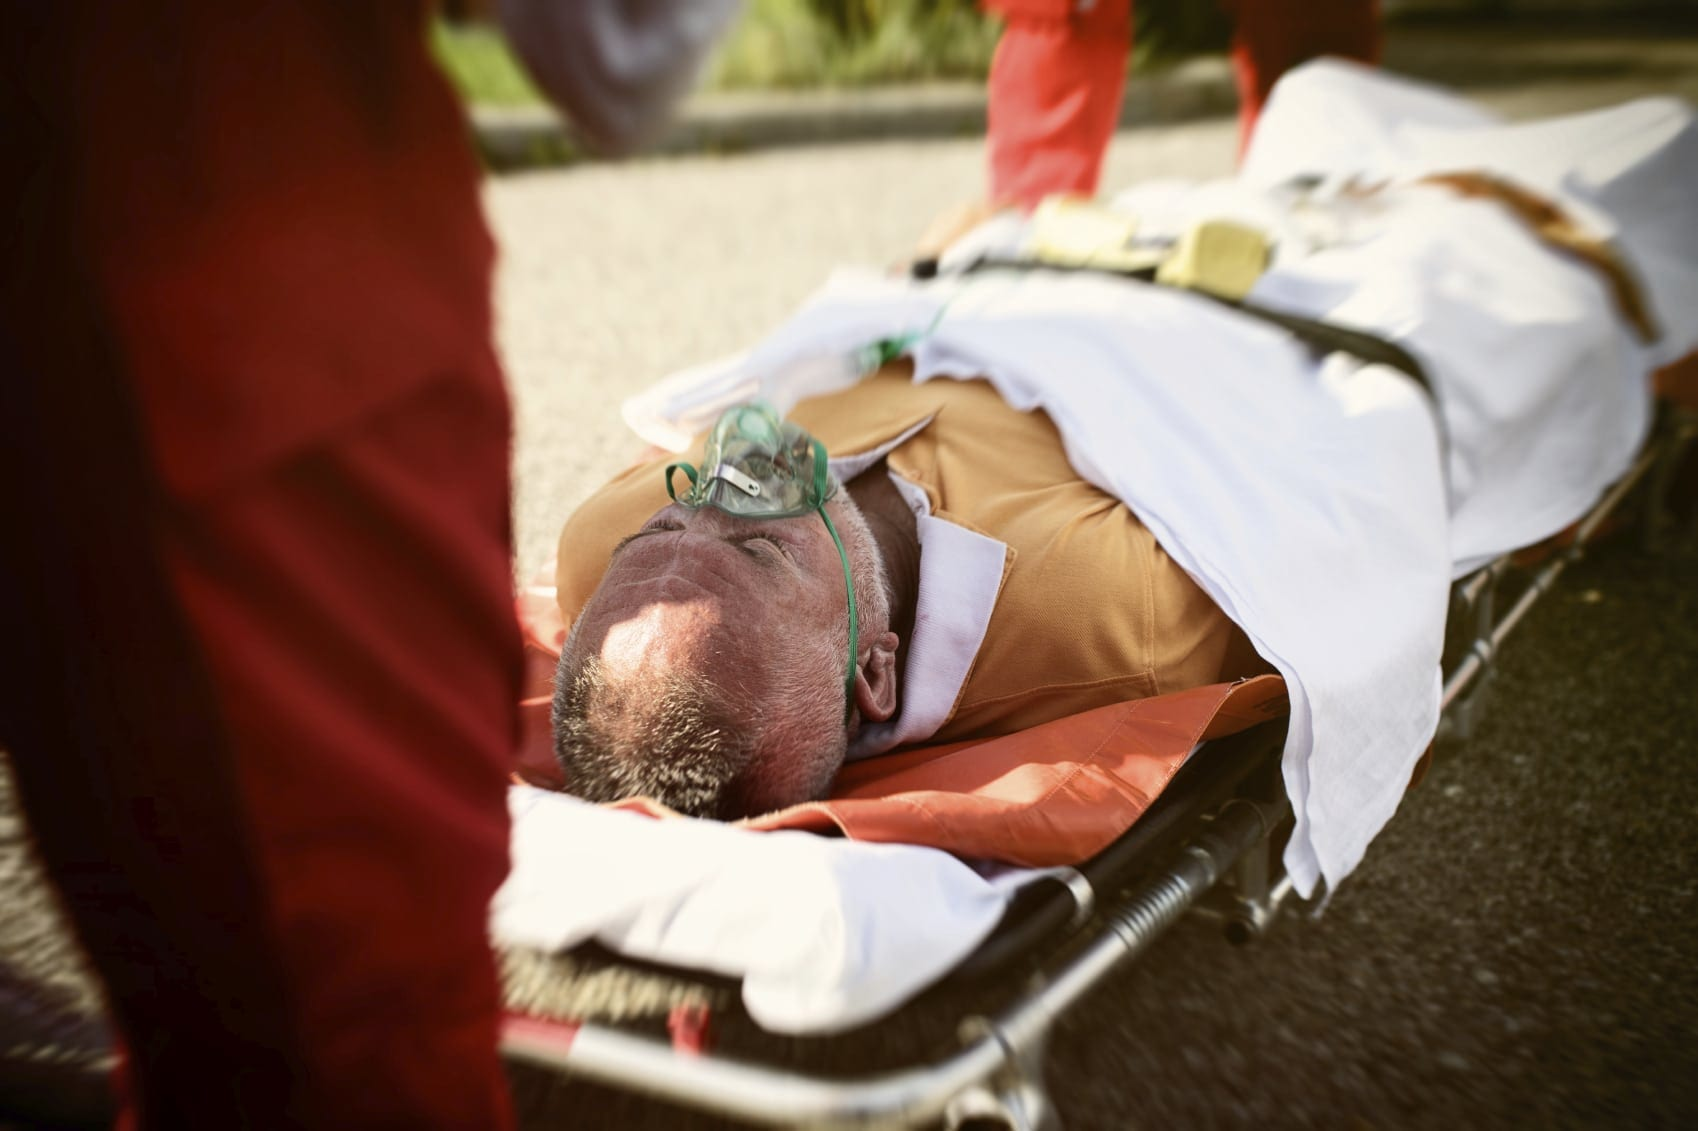 Man Being Loaded On Stretcher After Accident Stock Photo